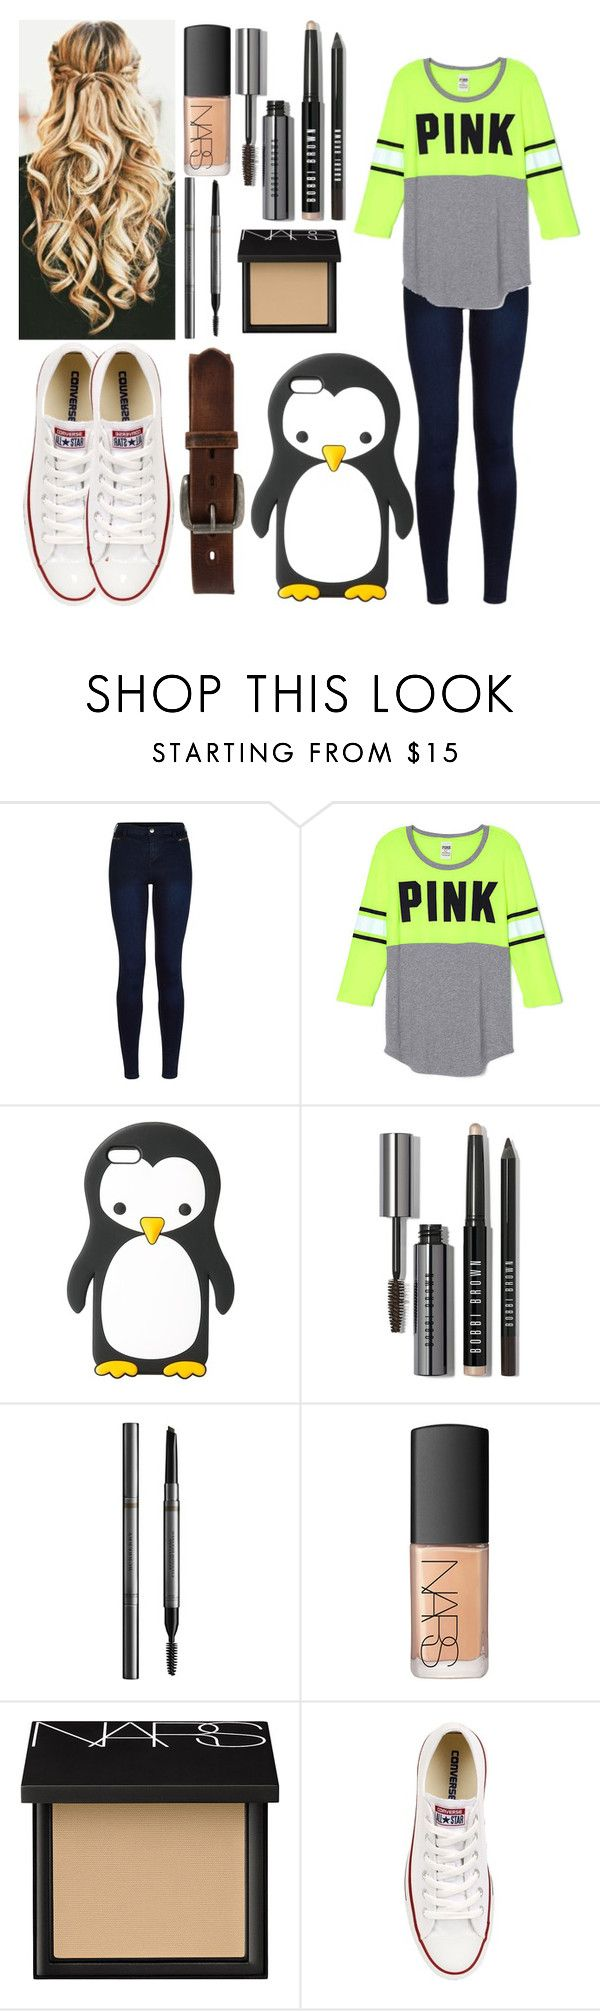 """""""We are going to get Christmas presents from other family members"""" by me-is-a-pizza ❤ liked on Polyvore featuring Urban Bliss, MANGO, Bobbi Brown Cosmetics, Burberry, NARS Cosmetics, Converse and Bed